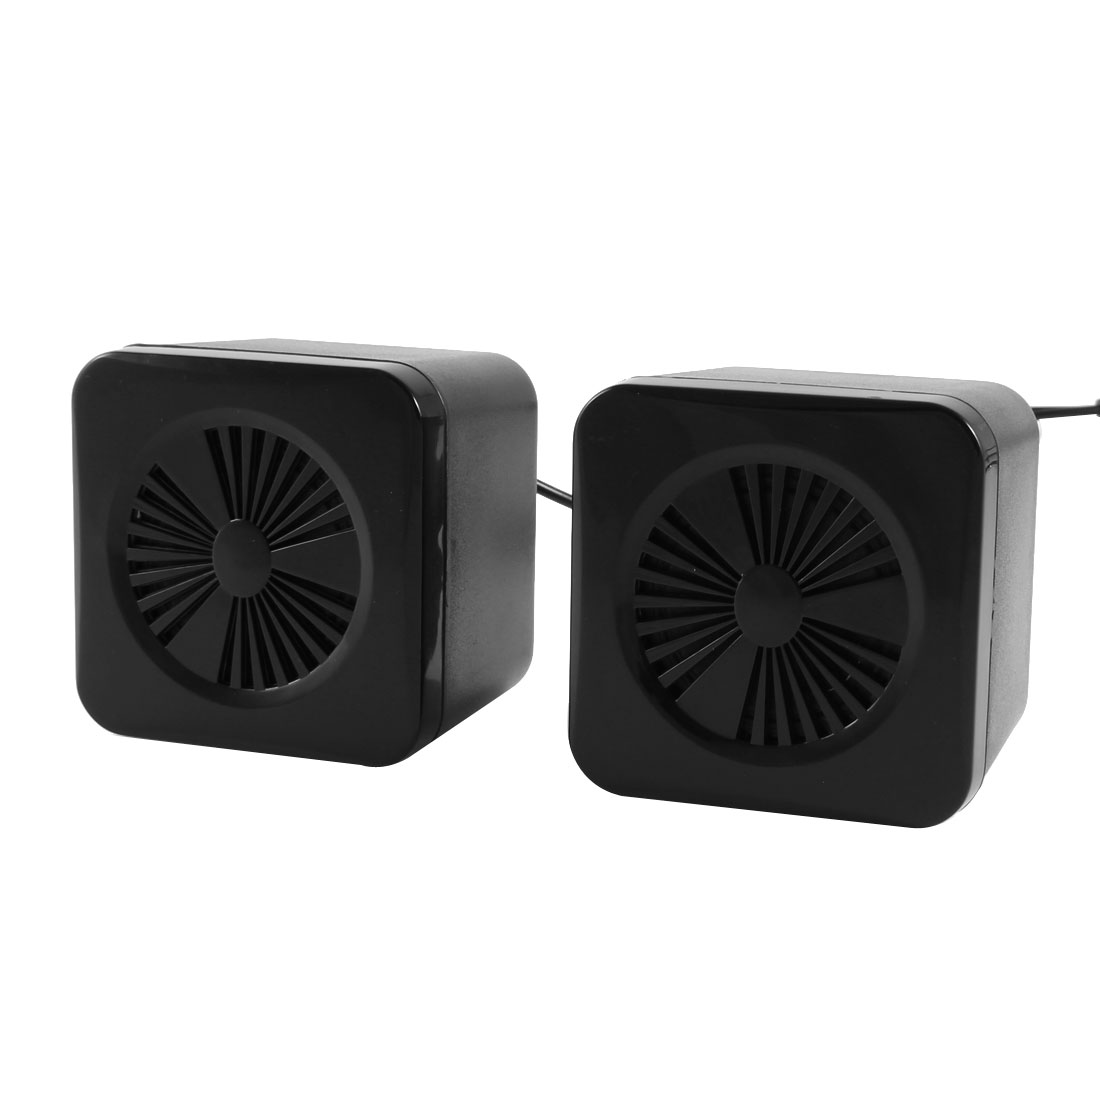 4 Ohm 3W Volume Control USB 2.0 Desktop Mini Speaker Box Pair for MP3 PC